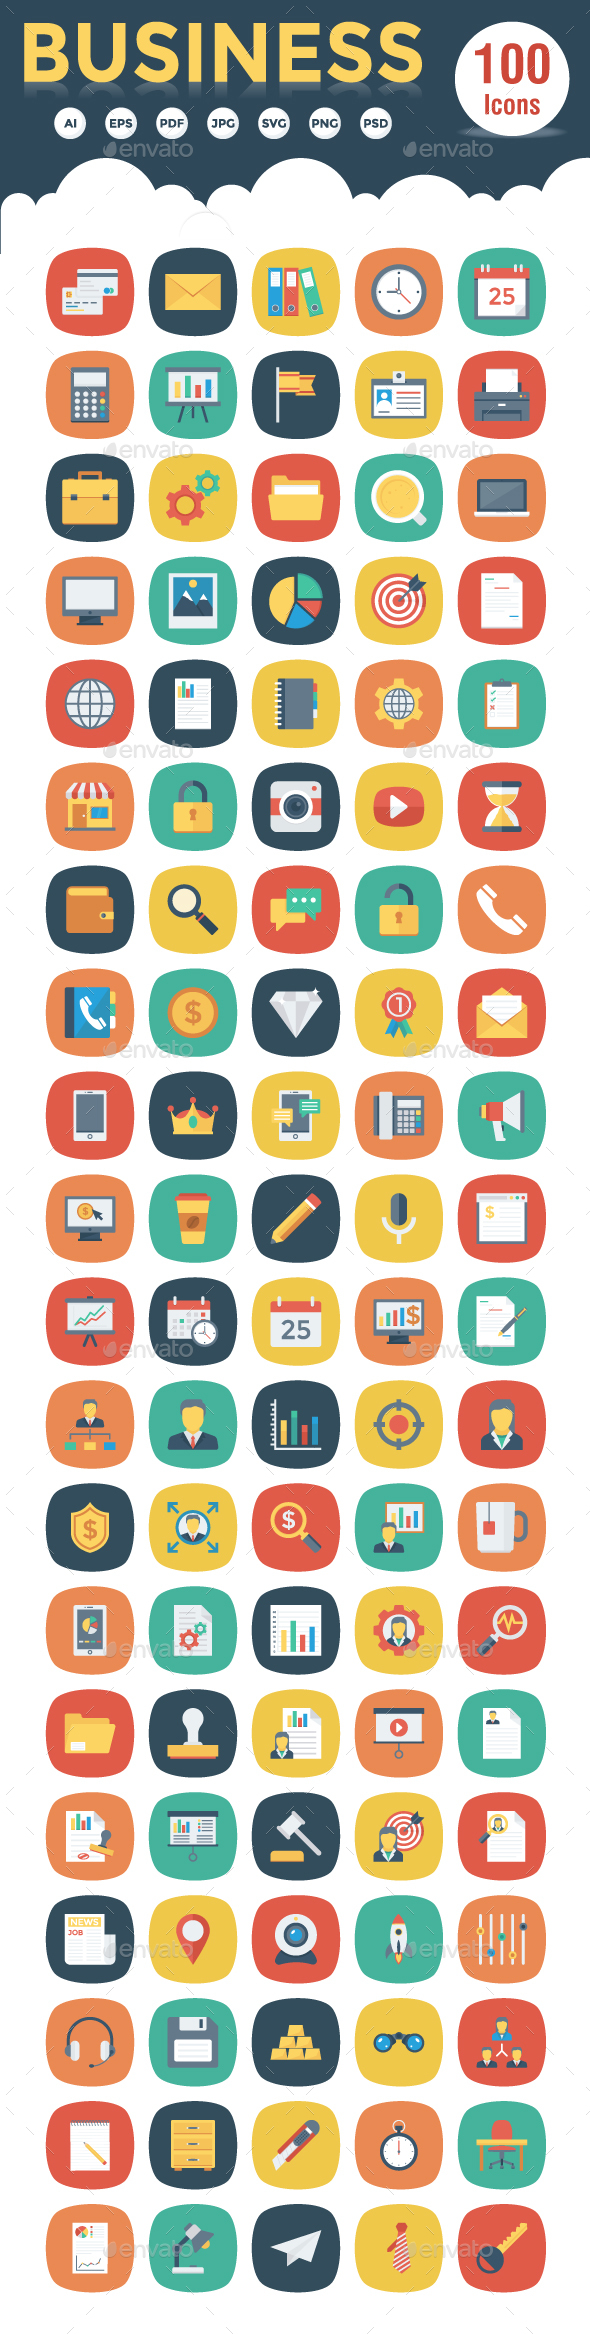 100 Business Flat Square Icons - Business Icons